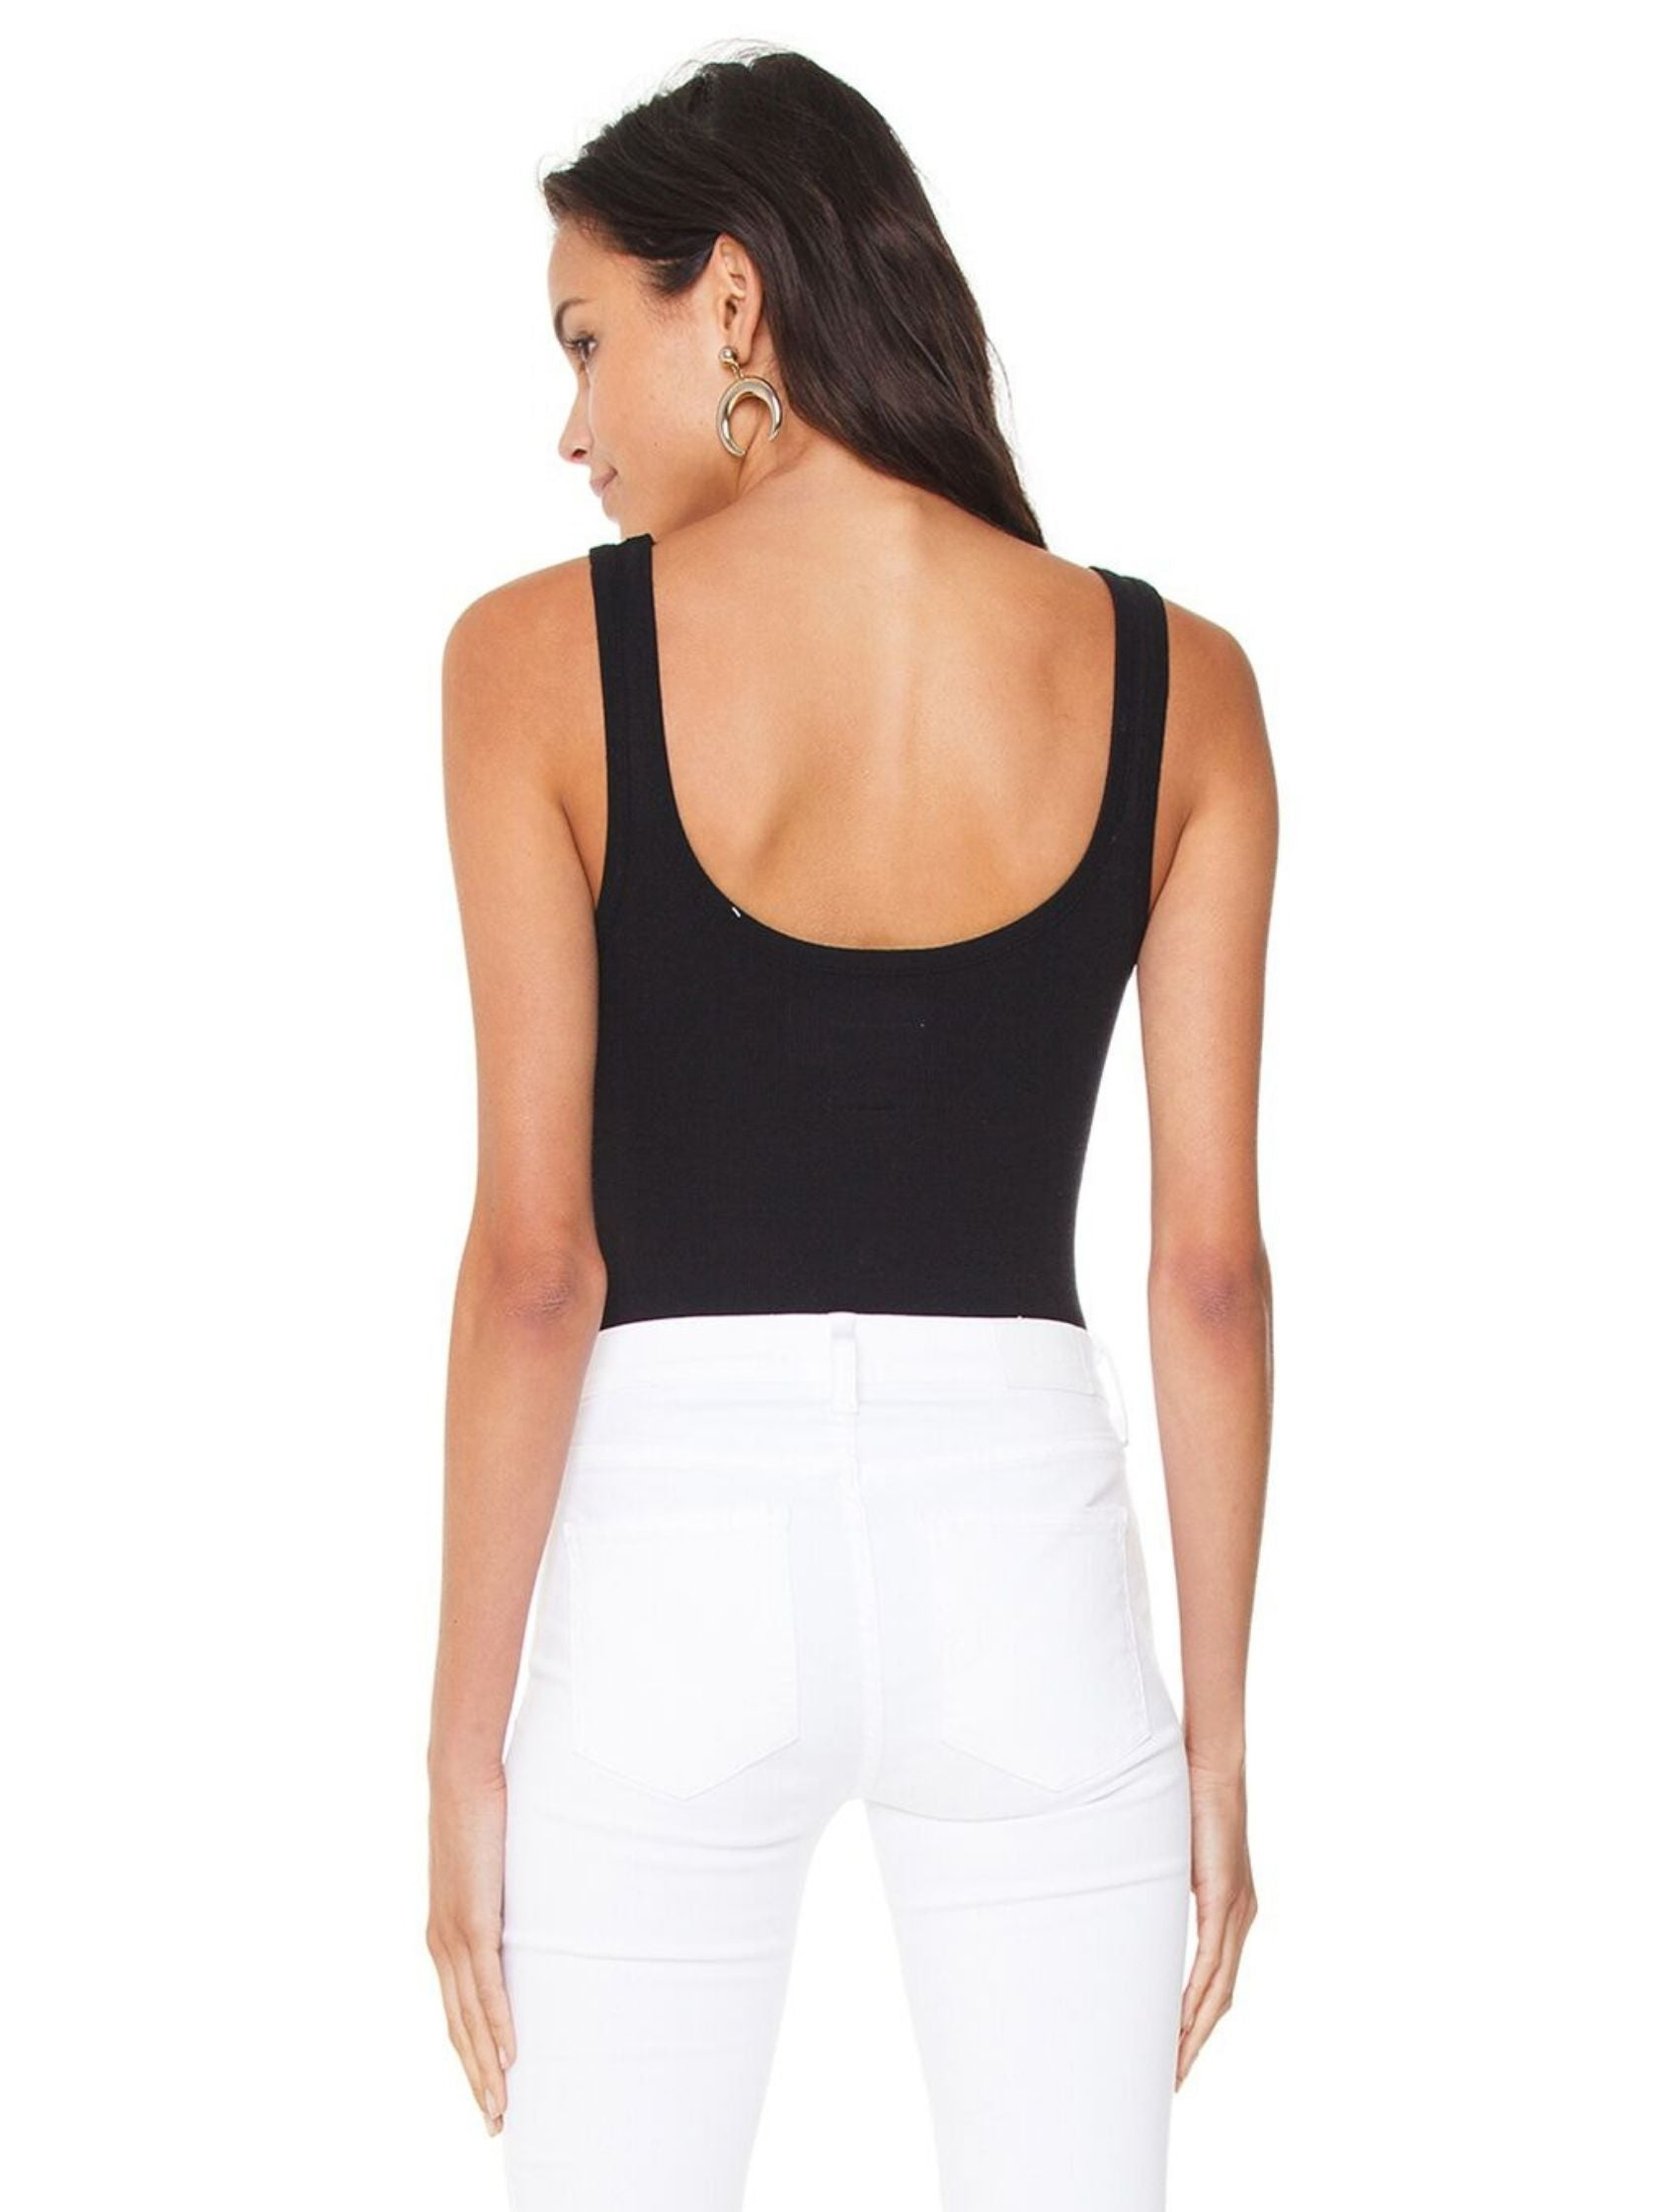 Women wearing a bodysuit rental from Chaser called Scoop Neck Bodysuit